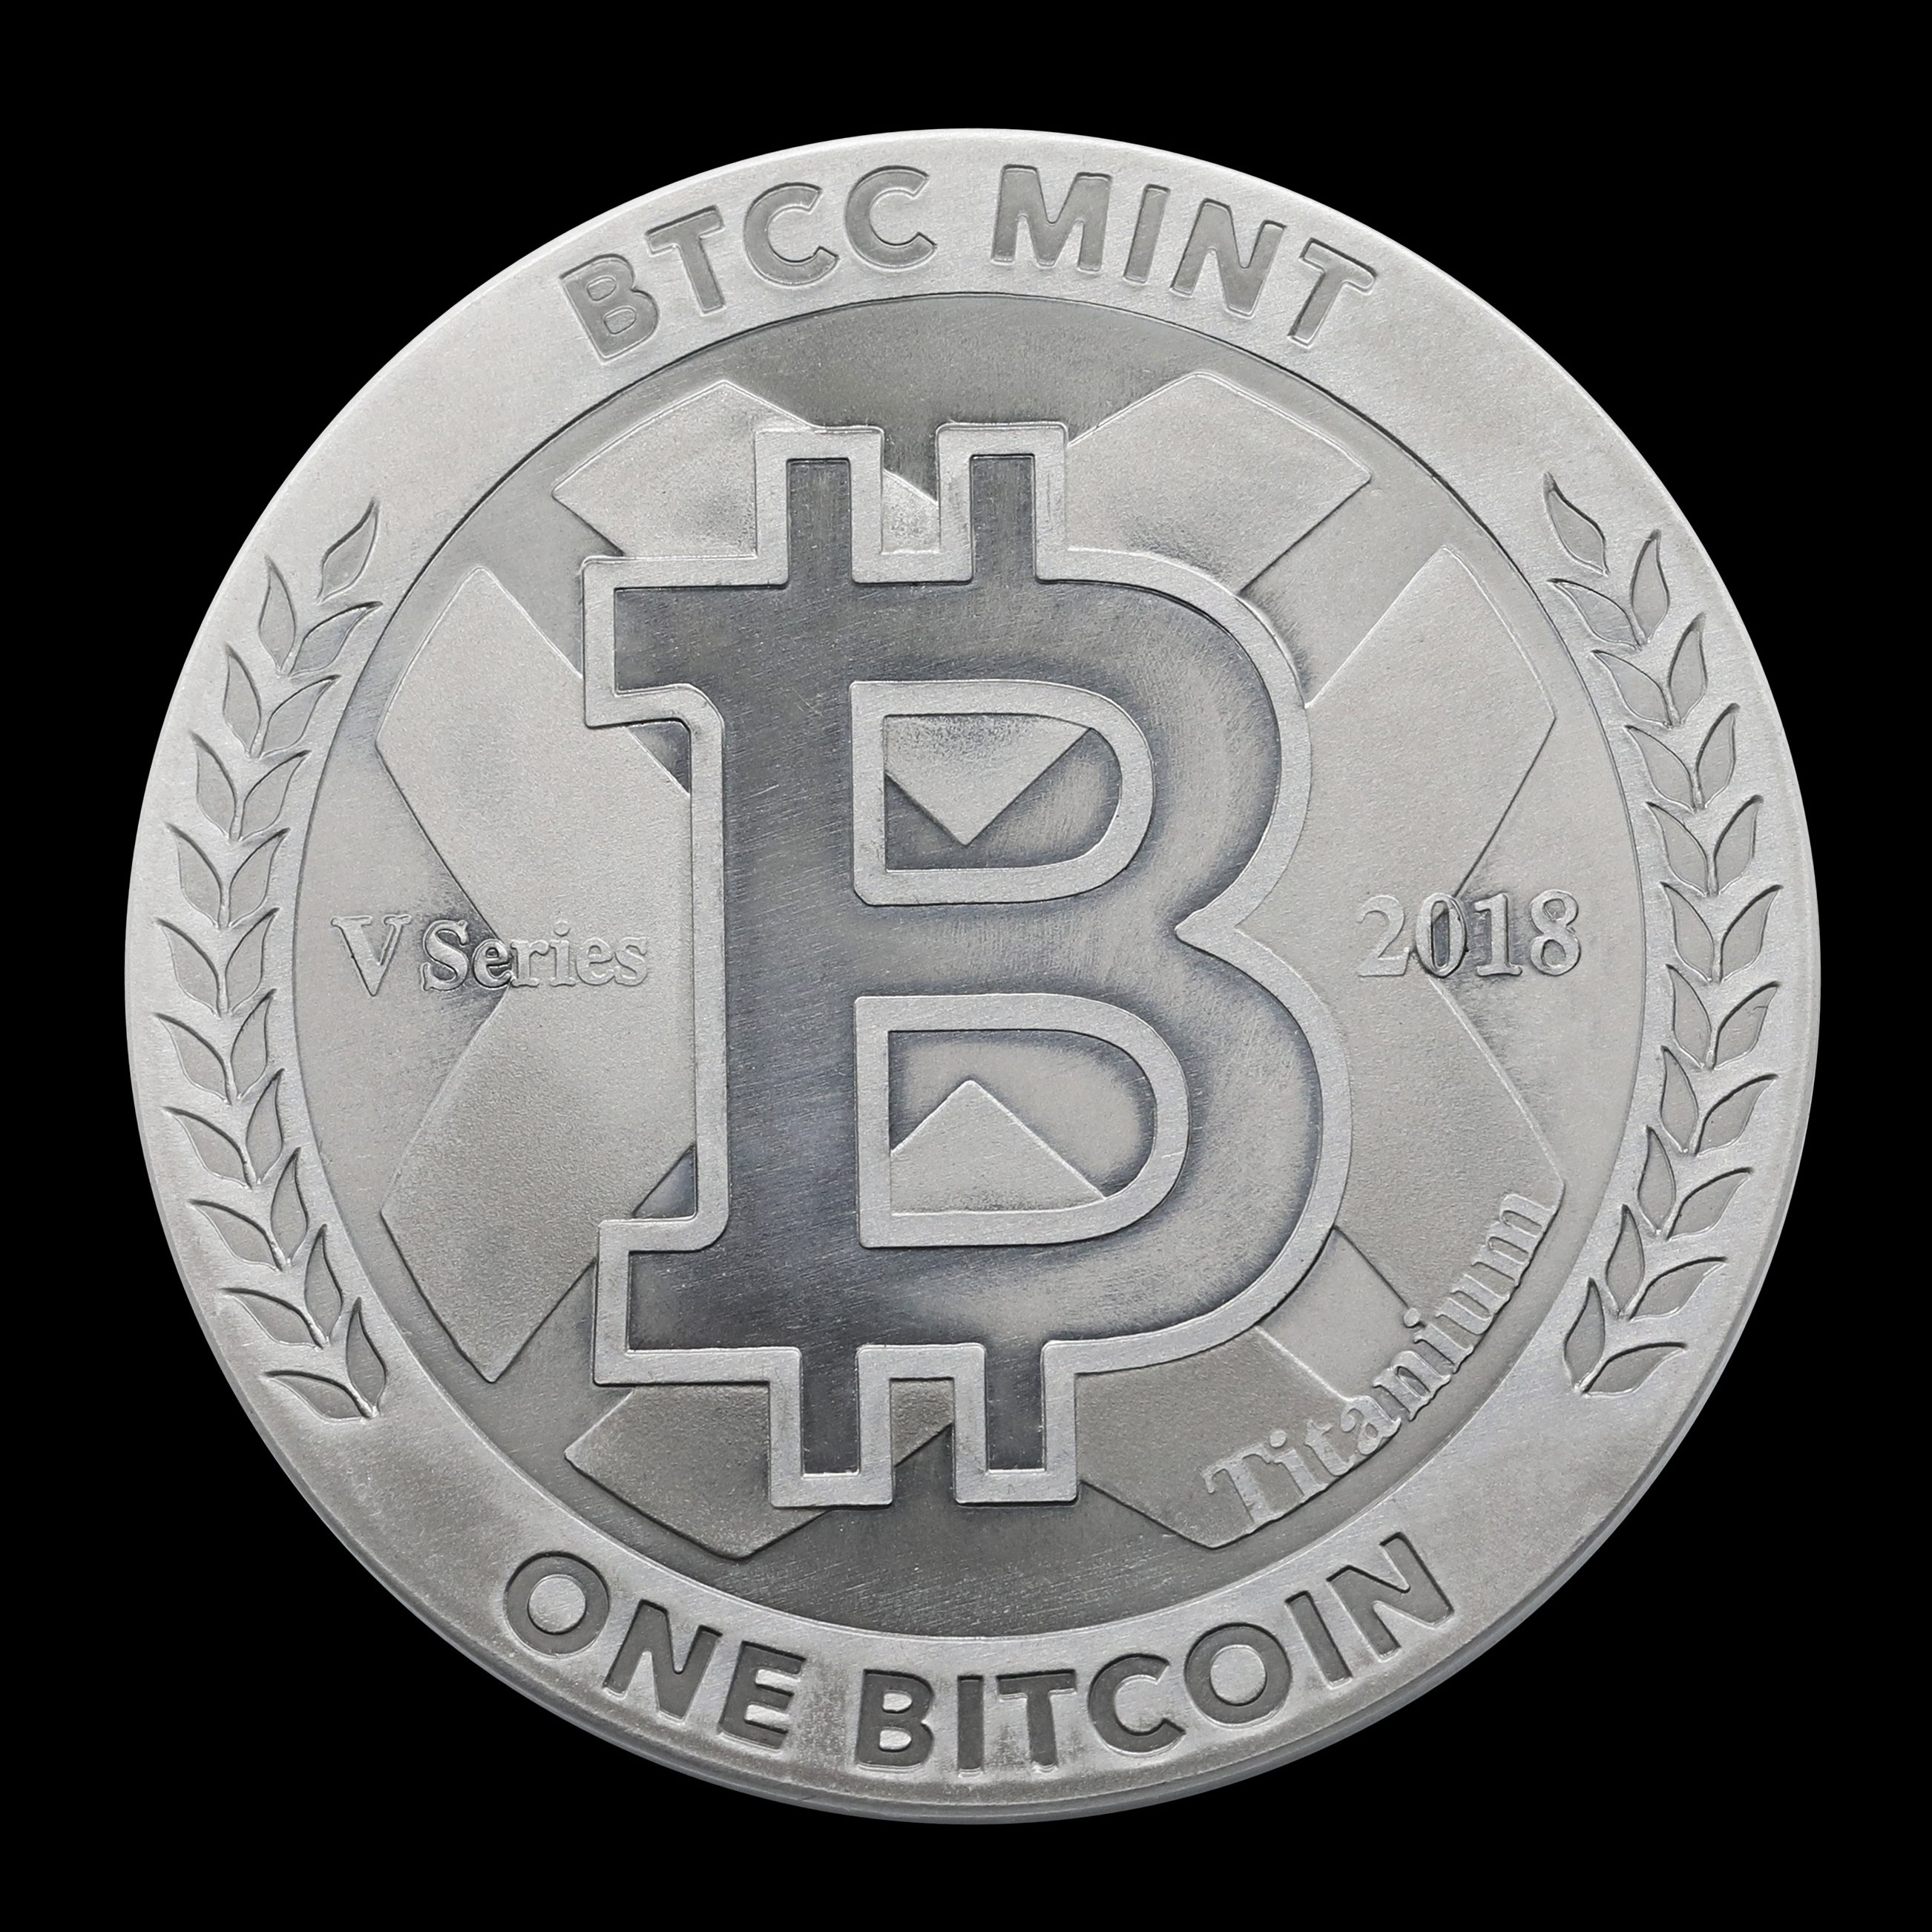 Obverse of un circulated V Series 1 BTC physical Bitcoin, titanium coin designed by Bobby Lee and the BTCC Mint